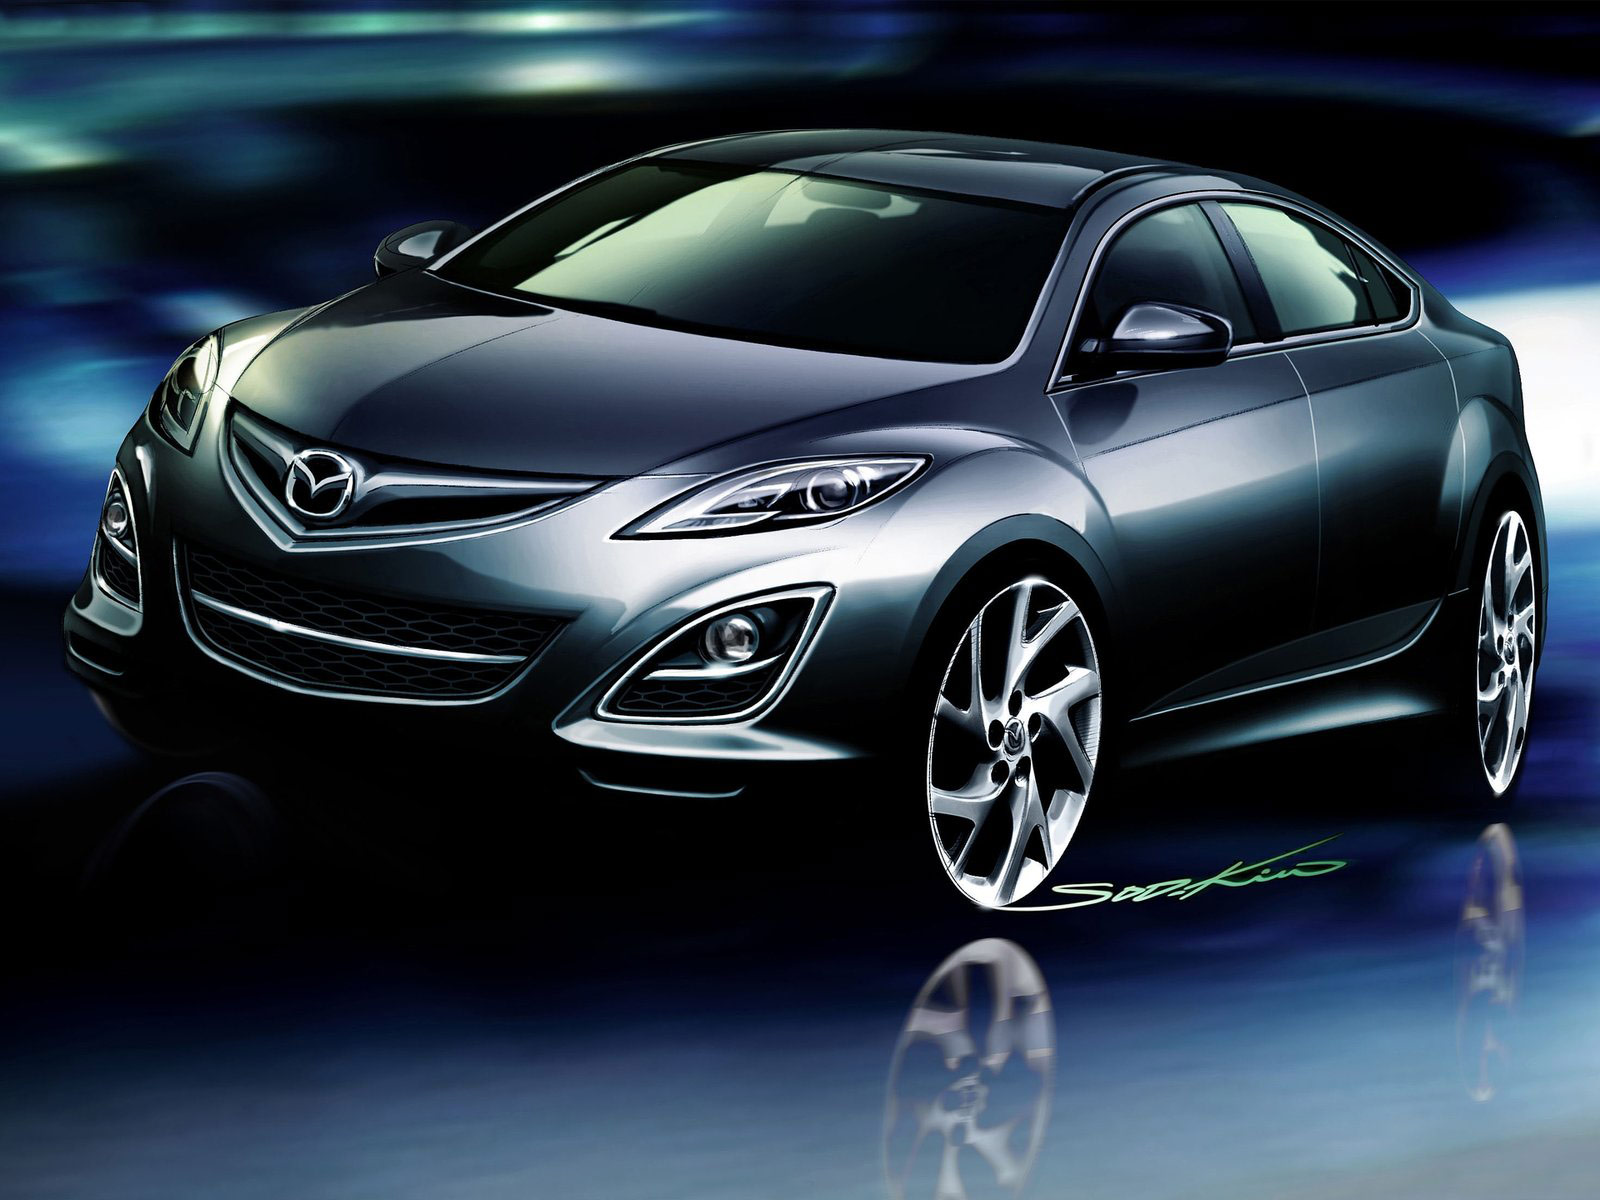 2011 mazda 6 japan automobiles photos pictures wallpapers. Black Bedroom Furniture Sets. Home Design Ideas